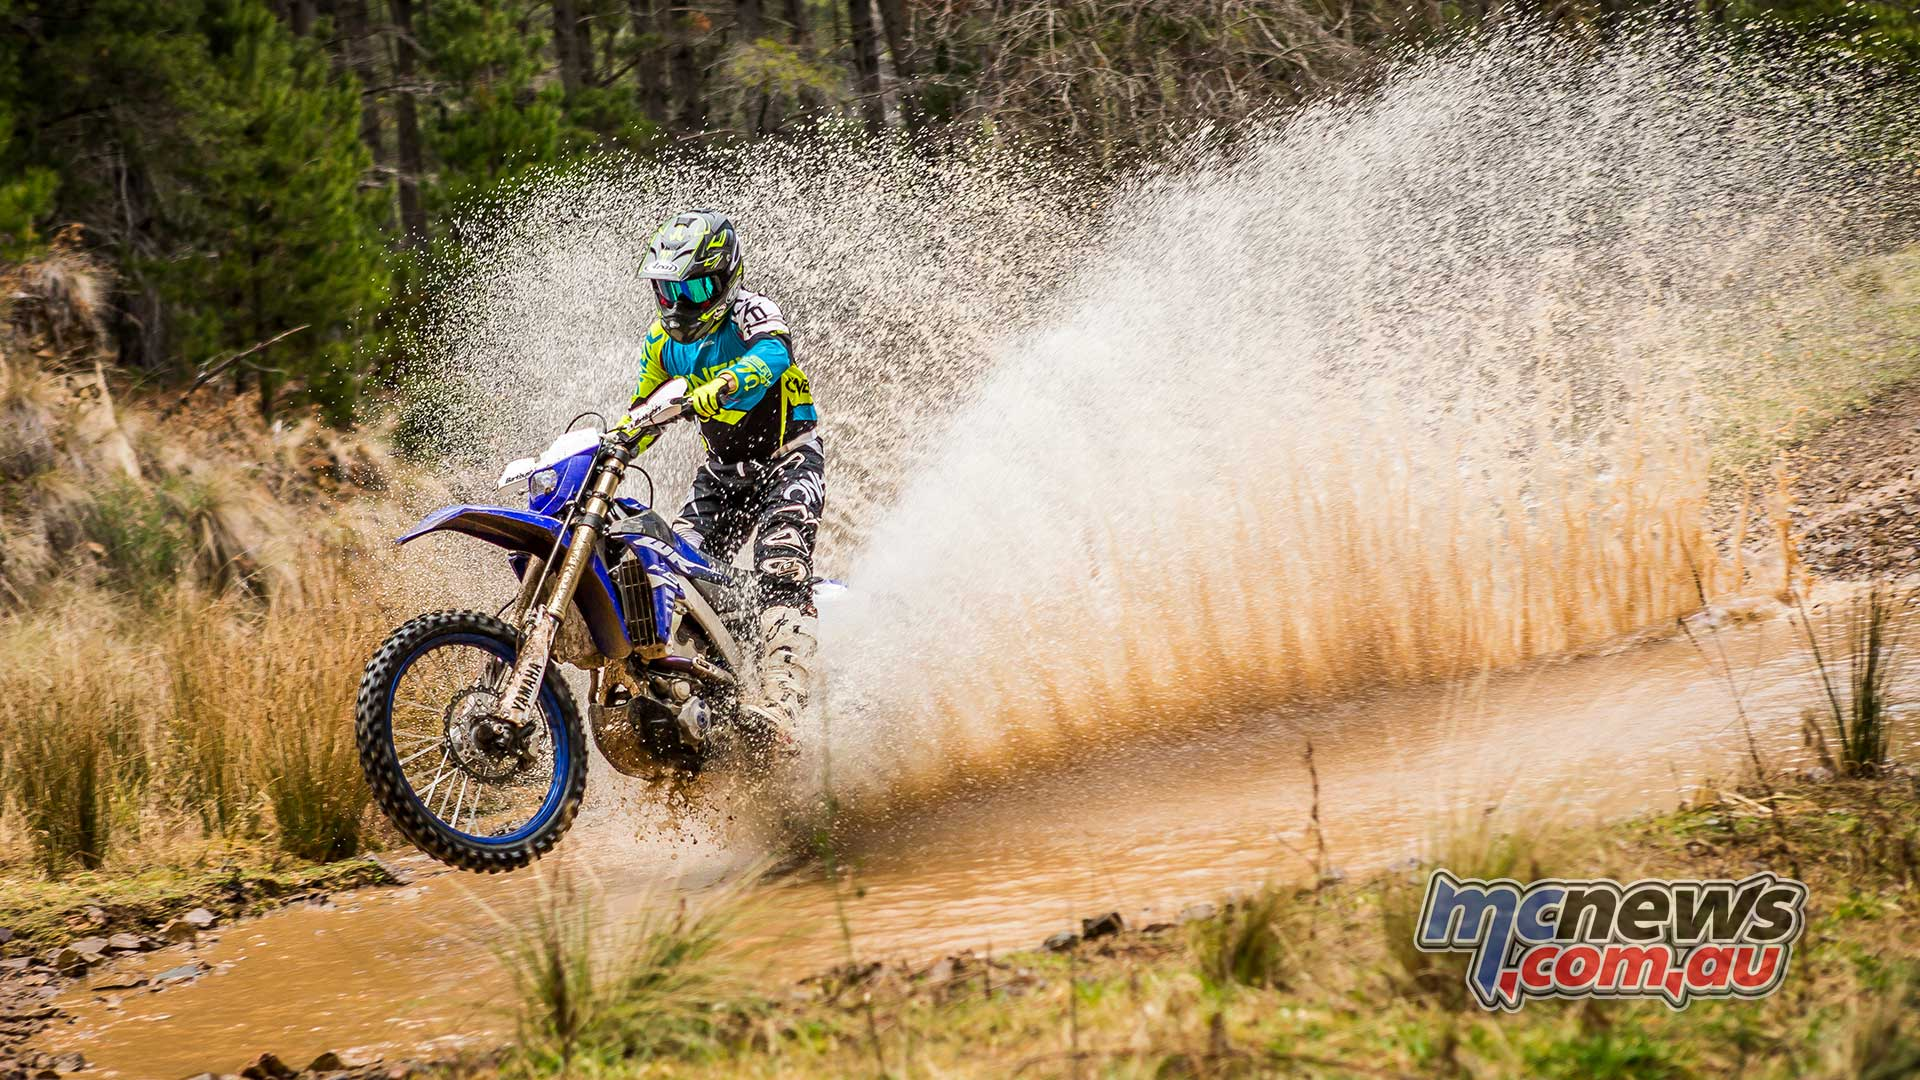 2018 Yamaha WR250F Review Motorcycle Test MCNewscomau 1920x1080